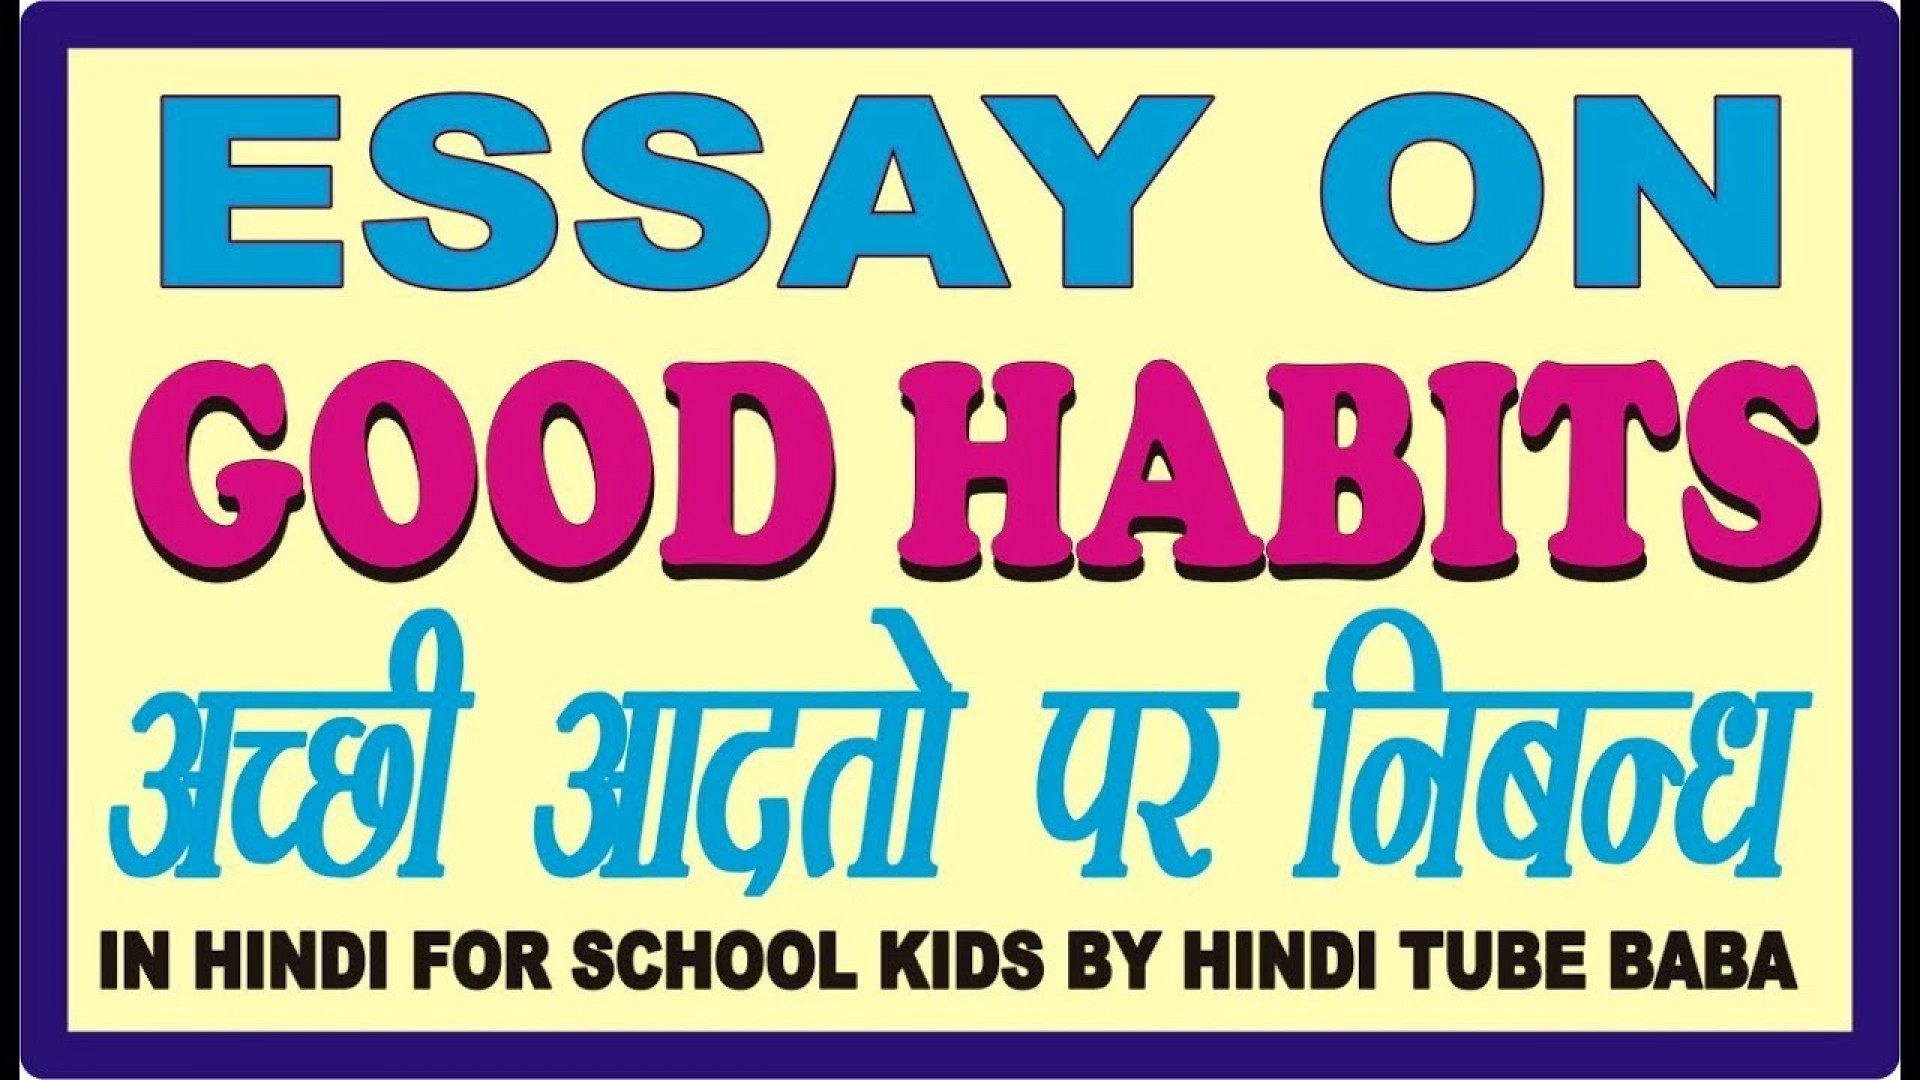 006 Good Habits Essay In Hindi Maxresdefault Exceptional Food Wikipedia 1920